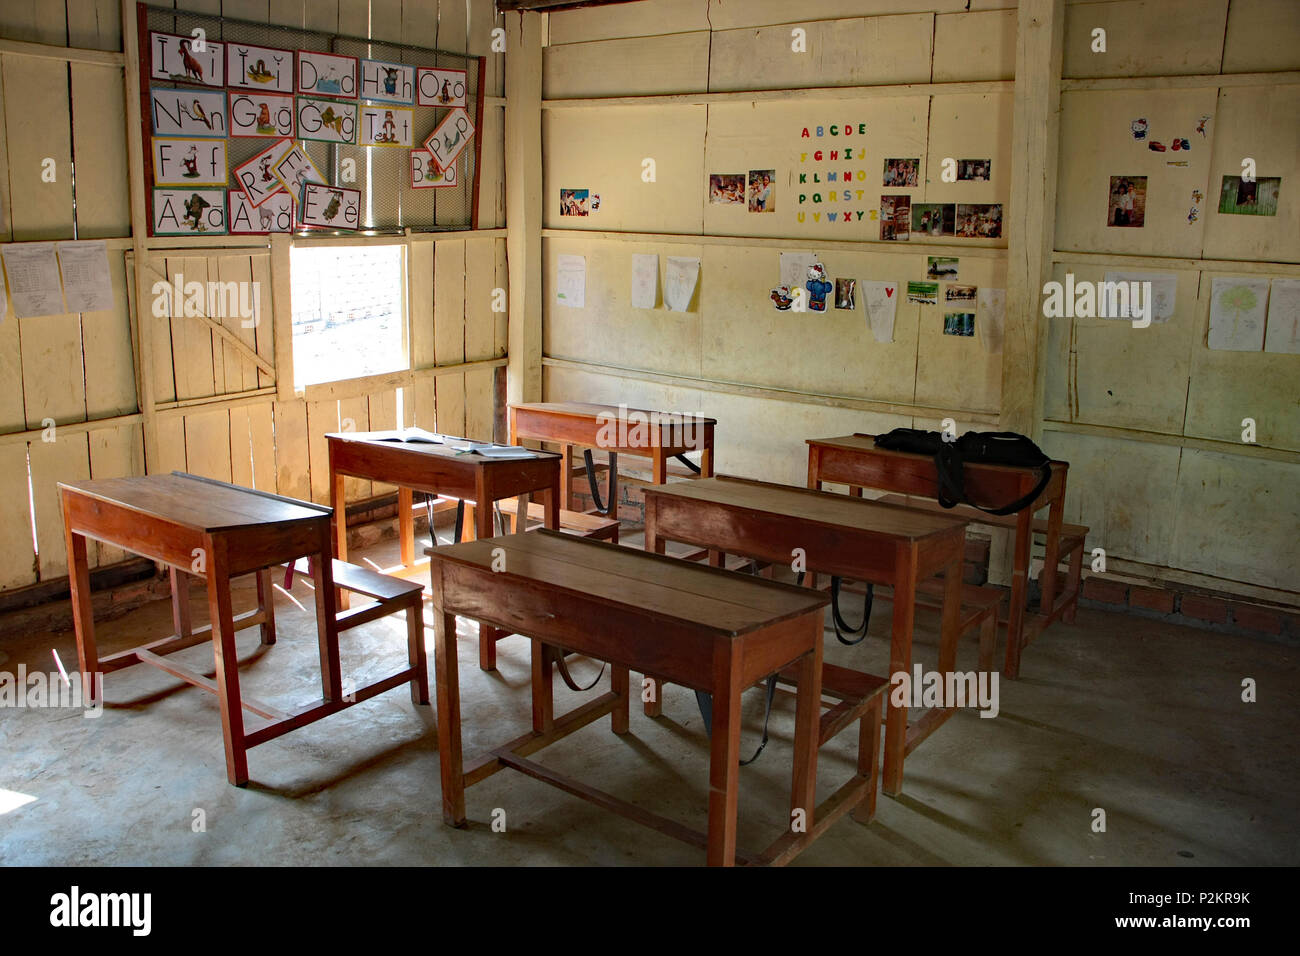 Schools For Cambodia High Resolution Stock Photography And Images Alamy